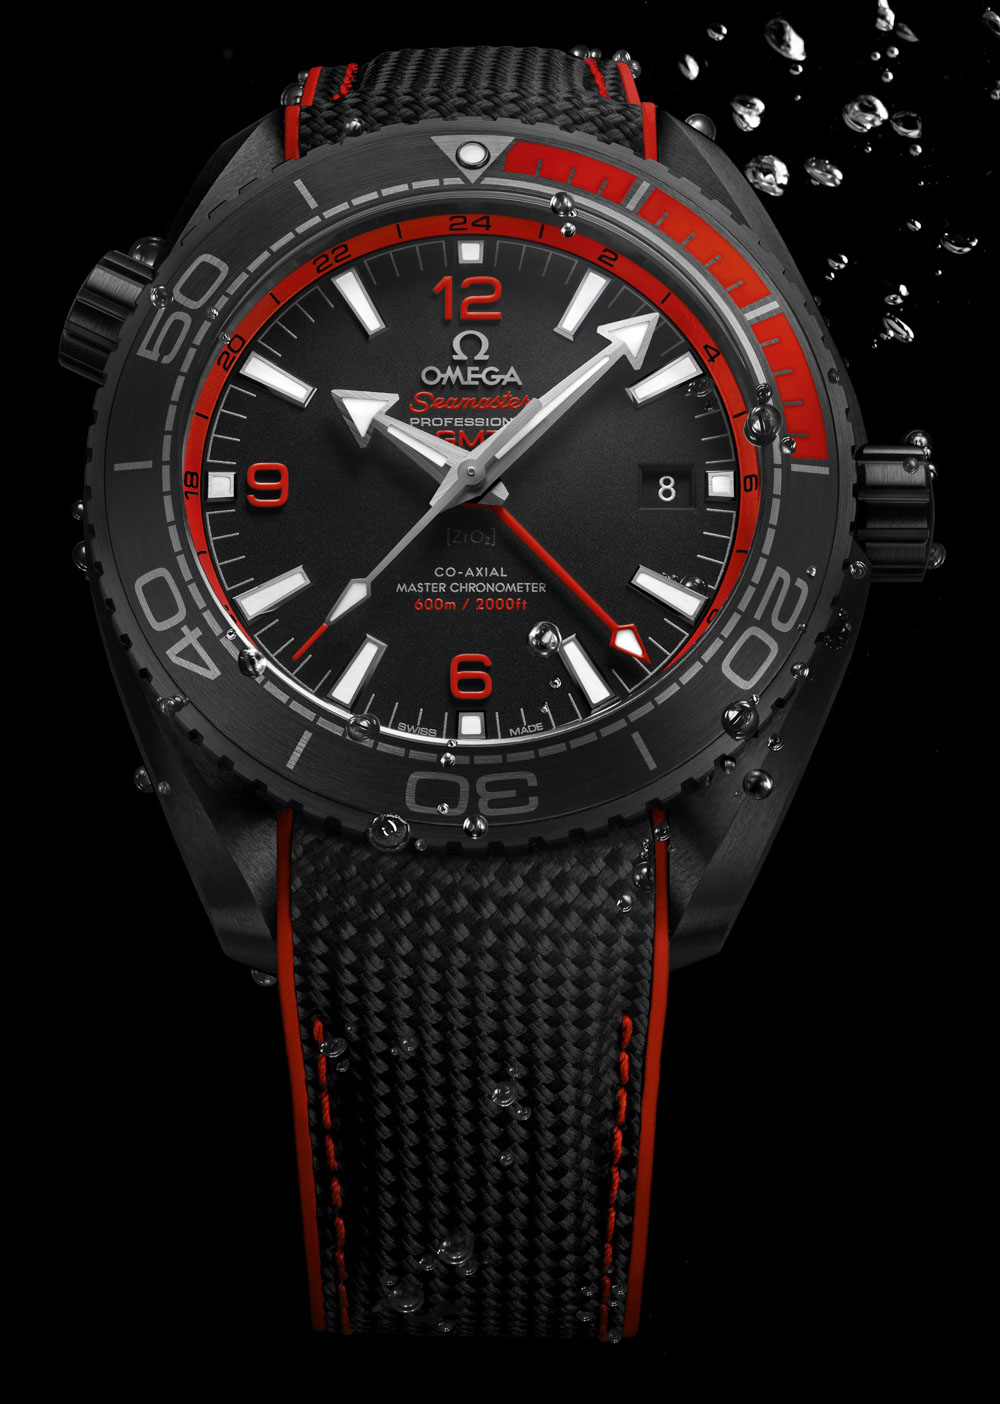 Omega-Seamaster-Planet-Ocean-Deep-Black-GMT-watch-13